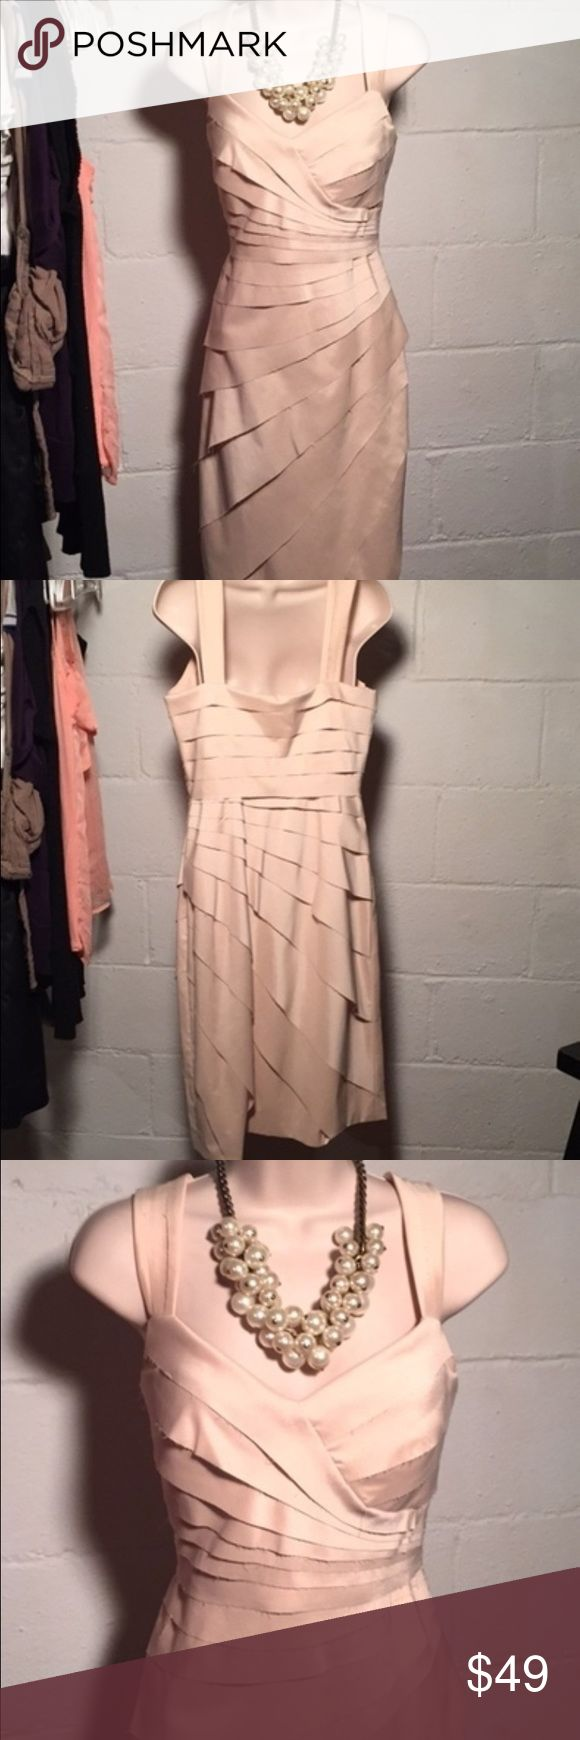 NWT Sangria champaign beige party dress Good nwt condition.  No stains, tears, or holes.  Comes in Garment bag  •I bundle & discount bundles •If an item is higher than you want to pay, message an offer or favorite & wait for price to drop weekly.  •My mannequin is Xsm so sometimes items appear loose or I clip back for actual look/fit •Usually ships within 24 hrs and latest 48 hours unless otherwise noted.  •Some of my items are various sizes because I sell for sister as well. #dress #wedding…